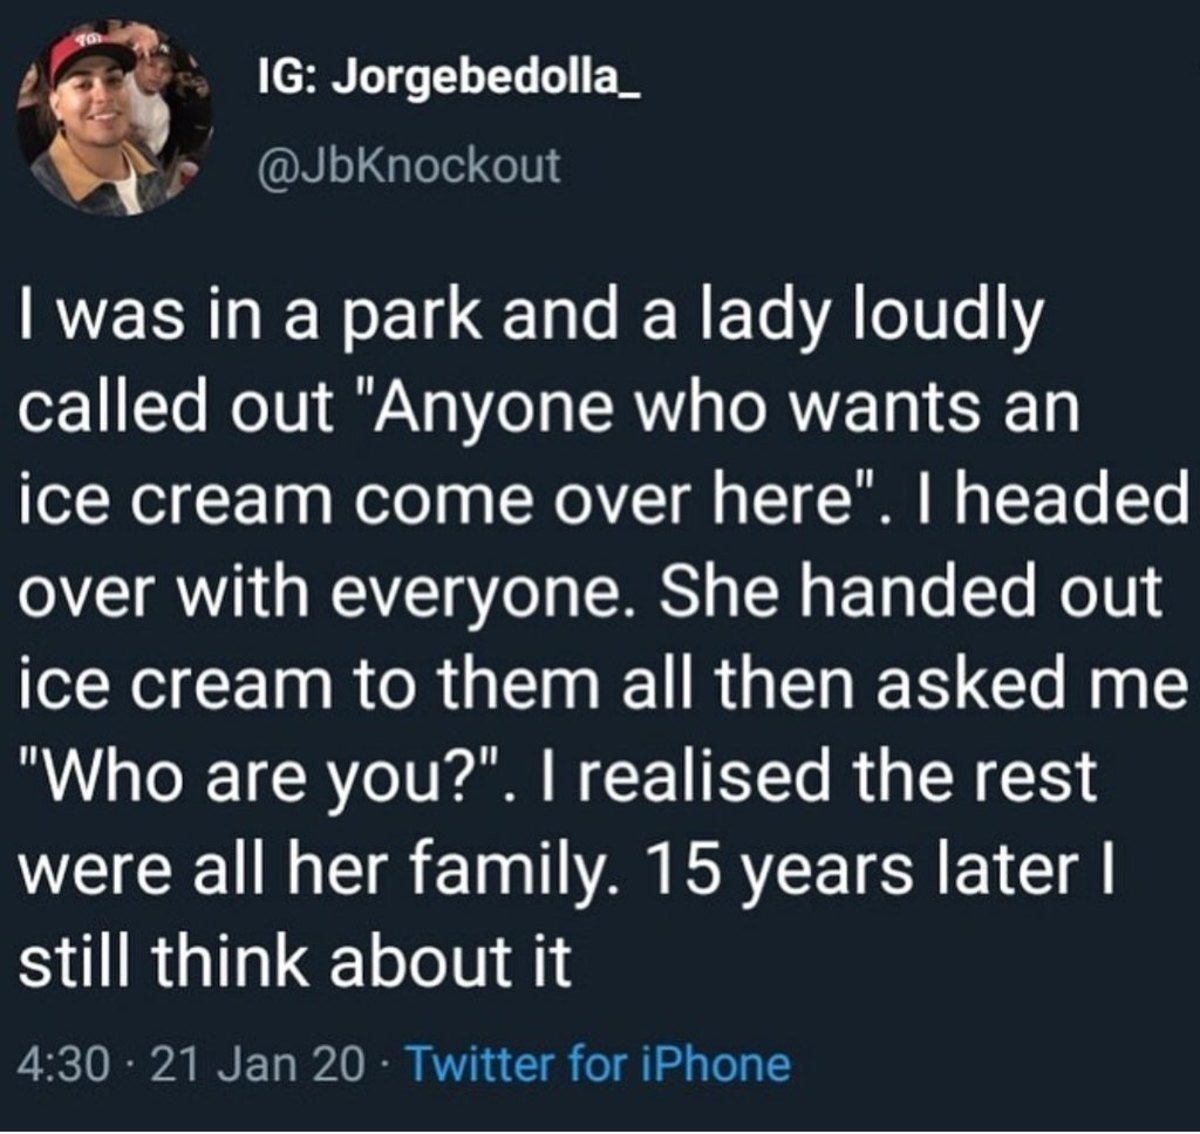 reliable womanly Nutjobs. .. I feel like most people would give you an ice cream even if you just randomly showed up, if theyre decent people. unless this dude is like 40, and he walked ove